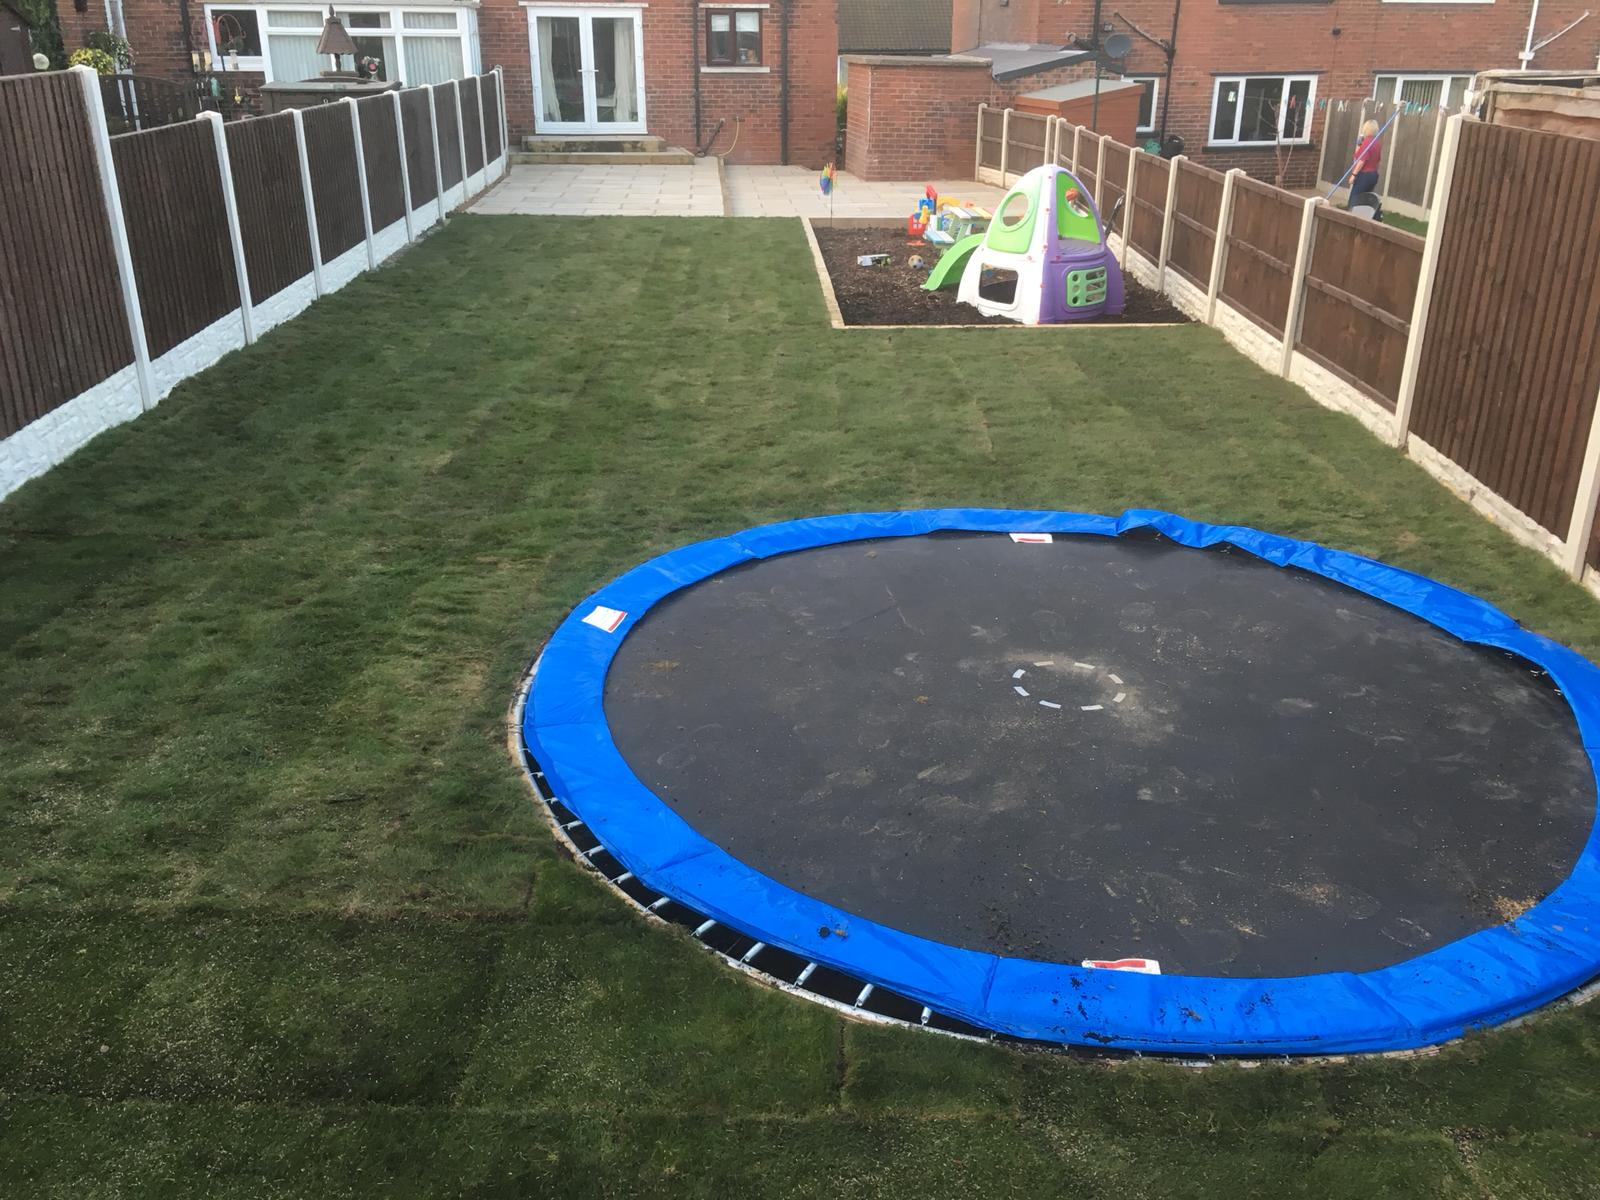 Landscaping project completed trampoline and grass